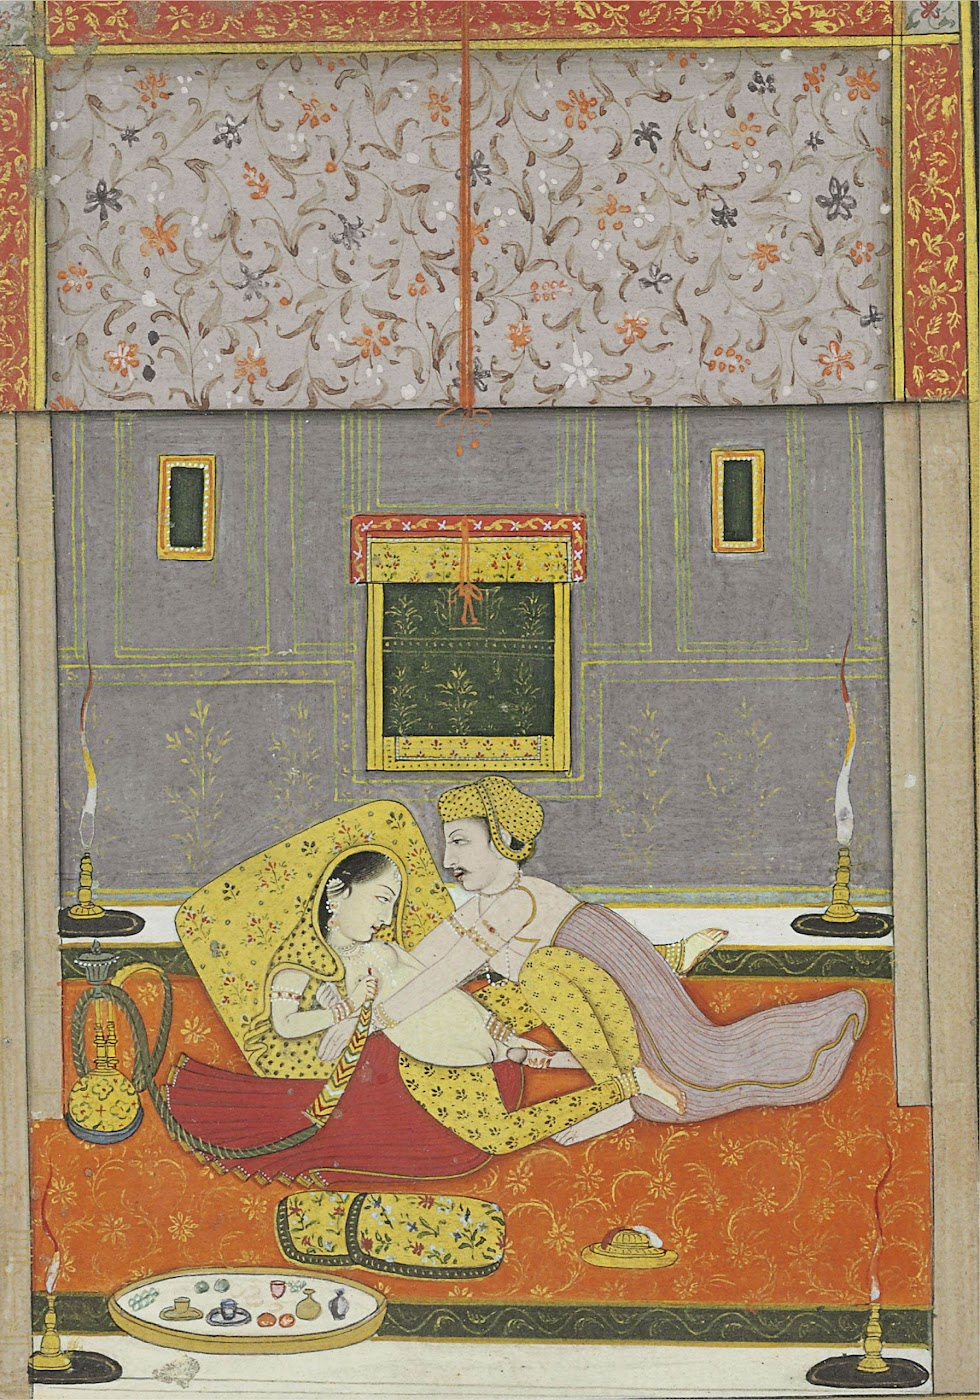 Couple Engaged in Lovemaking by Candlelight - Miniature Painting, North India, Probably Nurpur, Late 18th Century